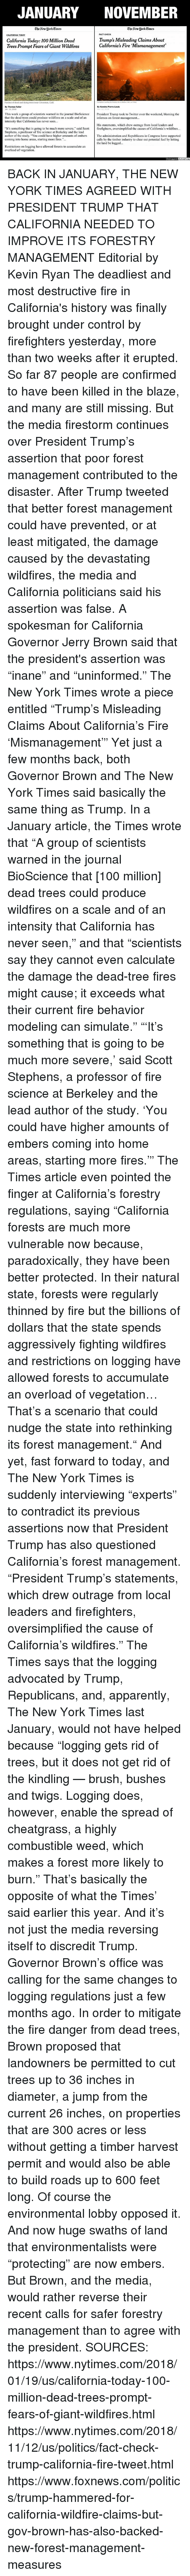 """Anaconda, Apparently, and Fire: JANUARY NOVEMBER  TheAew JJork Eimes  TheAewJjorkTimes  FACT CHECK  CALIFORNIA TODAY  California Today: 100 Million Dead  Trees Prompt Fears of Giant Wildfires  Trump's Misleading Claims About  California's Fire Mismanagement'  Patches of dead and dying trees near Cressman, Calif  By Thomas Fuller  lan. 19, 2018  By Kendra Pierre-Louis  This week a group of scientists warned in the journal BioScience President Trump took to Twitter over the weekend, blaming the  that the dead trees could produce wildfires on a scale and of an  infernos on forest management...  intensity that California has never seen  Stephens, a professor of fire science at Berkeley and the lead  coming into home areas, starting more fires.""""..  Restrictions on logging have allowed forests to accumulate an  His statements, which drew outrage from local leaders and  It's something that is going to be much more severe,"""" said Scott firefighters, oversimplified the causes of California's wildfires...  author of the study. """"You could have higher amounts of embers The administration and Republicans in Congress have supported  calls by the timber industry to clear out potential fuel by letting  the land be logged...  overload of vegetation.  Unbiased Amer BACK IN JANUARY, THE NEW YORK TIMES AGREED WITH PRESIDENT TRUMP THAT CALIFORNIA NEEDED TO IMPROVE ITS FORESTRY MANAGEMENT  Editorial by Kevin Ryan  The deadliest and most destructive fire in California's history was finally brought under control by firefighters yesterday, more than two weeks after it erupted.  So far 87 people are confirmed to have been killed in the blaze, and many are still missing.  But the media firestorm continues over President Trump's assertion that poor forest management contributed to the disaster.  After Trump tweeted that better forest management could have prevented, or at least mitigated, the damage caused by the devastating wildfires, the media and California politicians said his assertion was"""